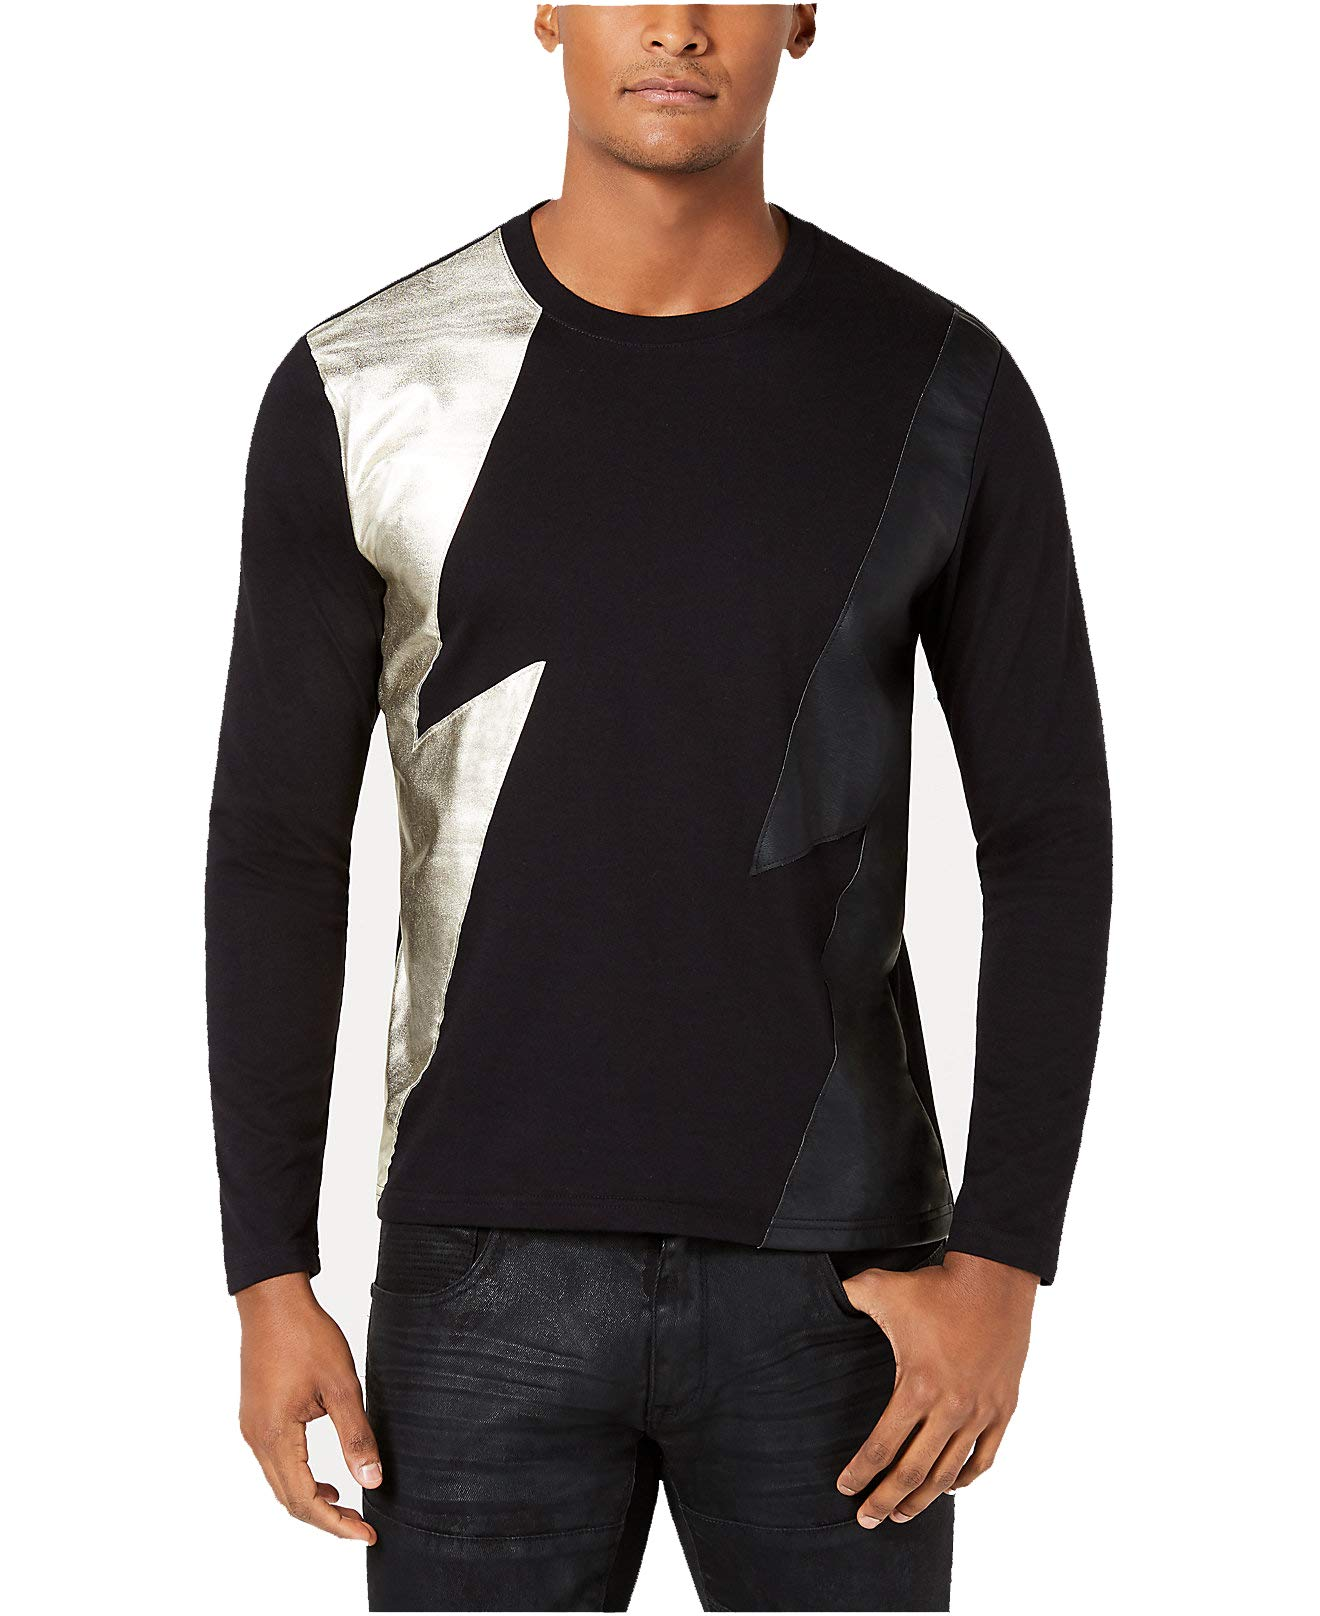 INC-NEW-Black-Mens-Size-Small-S-Long-Sleeve-Lightning-Tee-Shirt